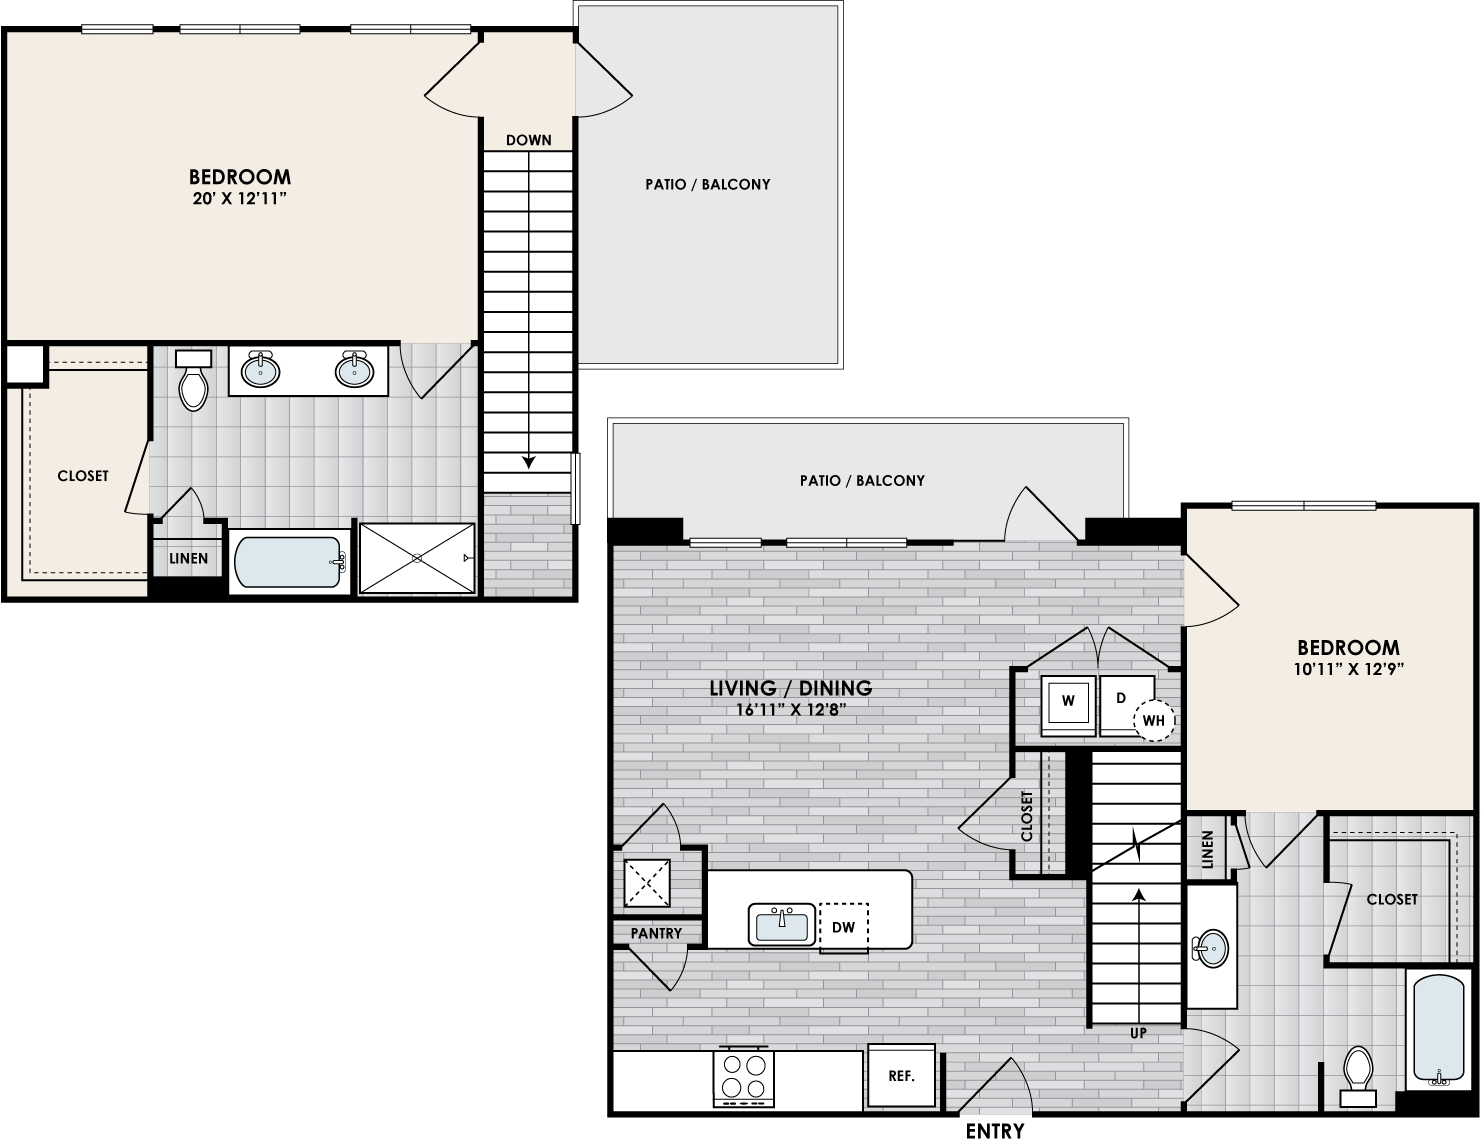 B2S floor plan – 2 bed, 2 bath, 1384 square feet